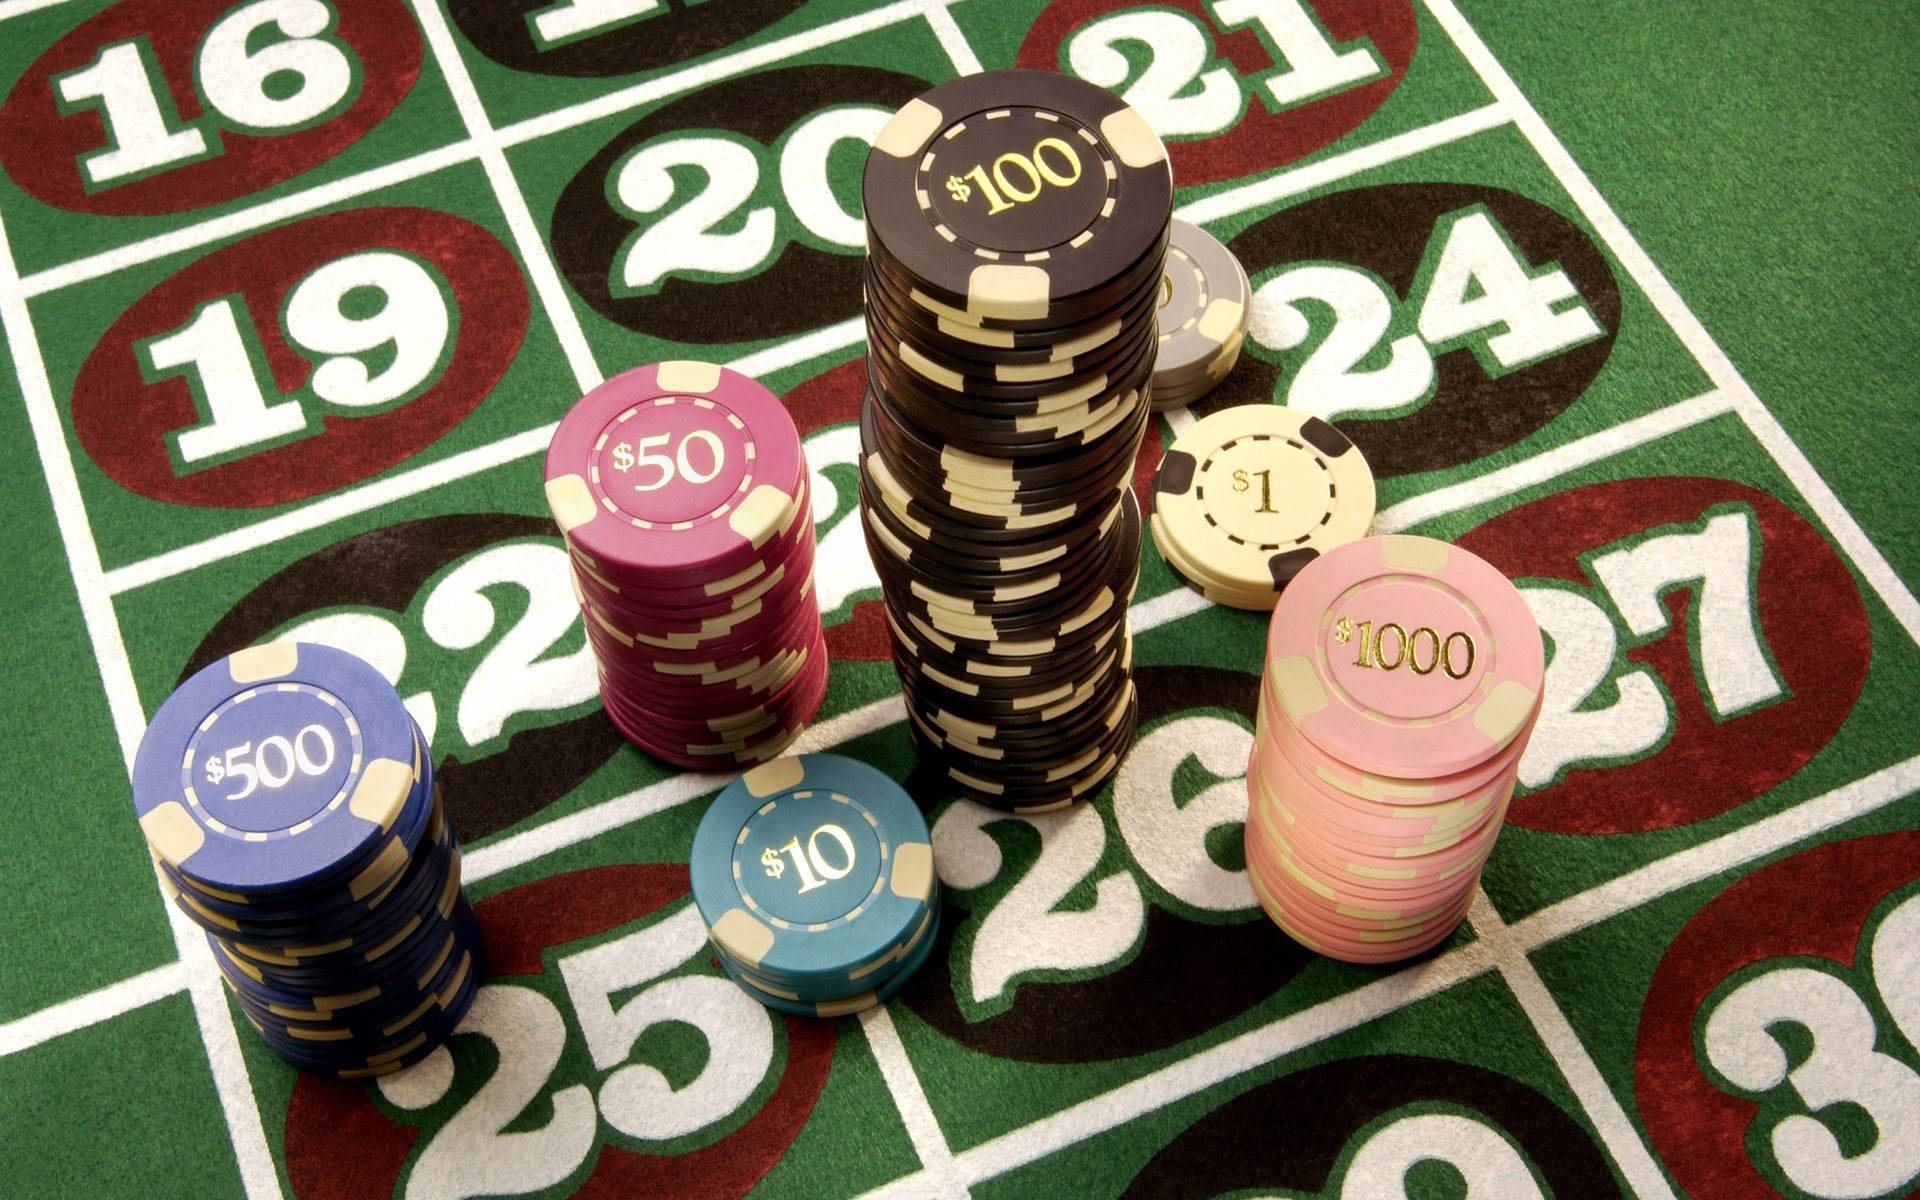 Casinotropez.com On-line On Line Casino